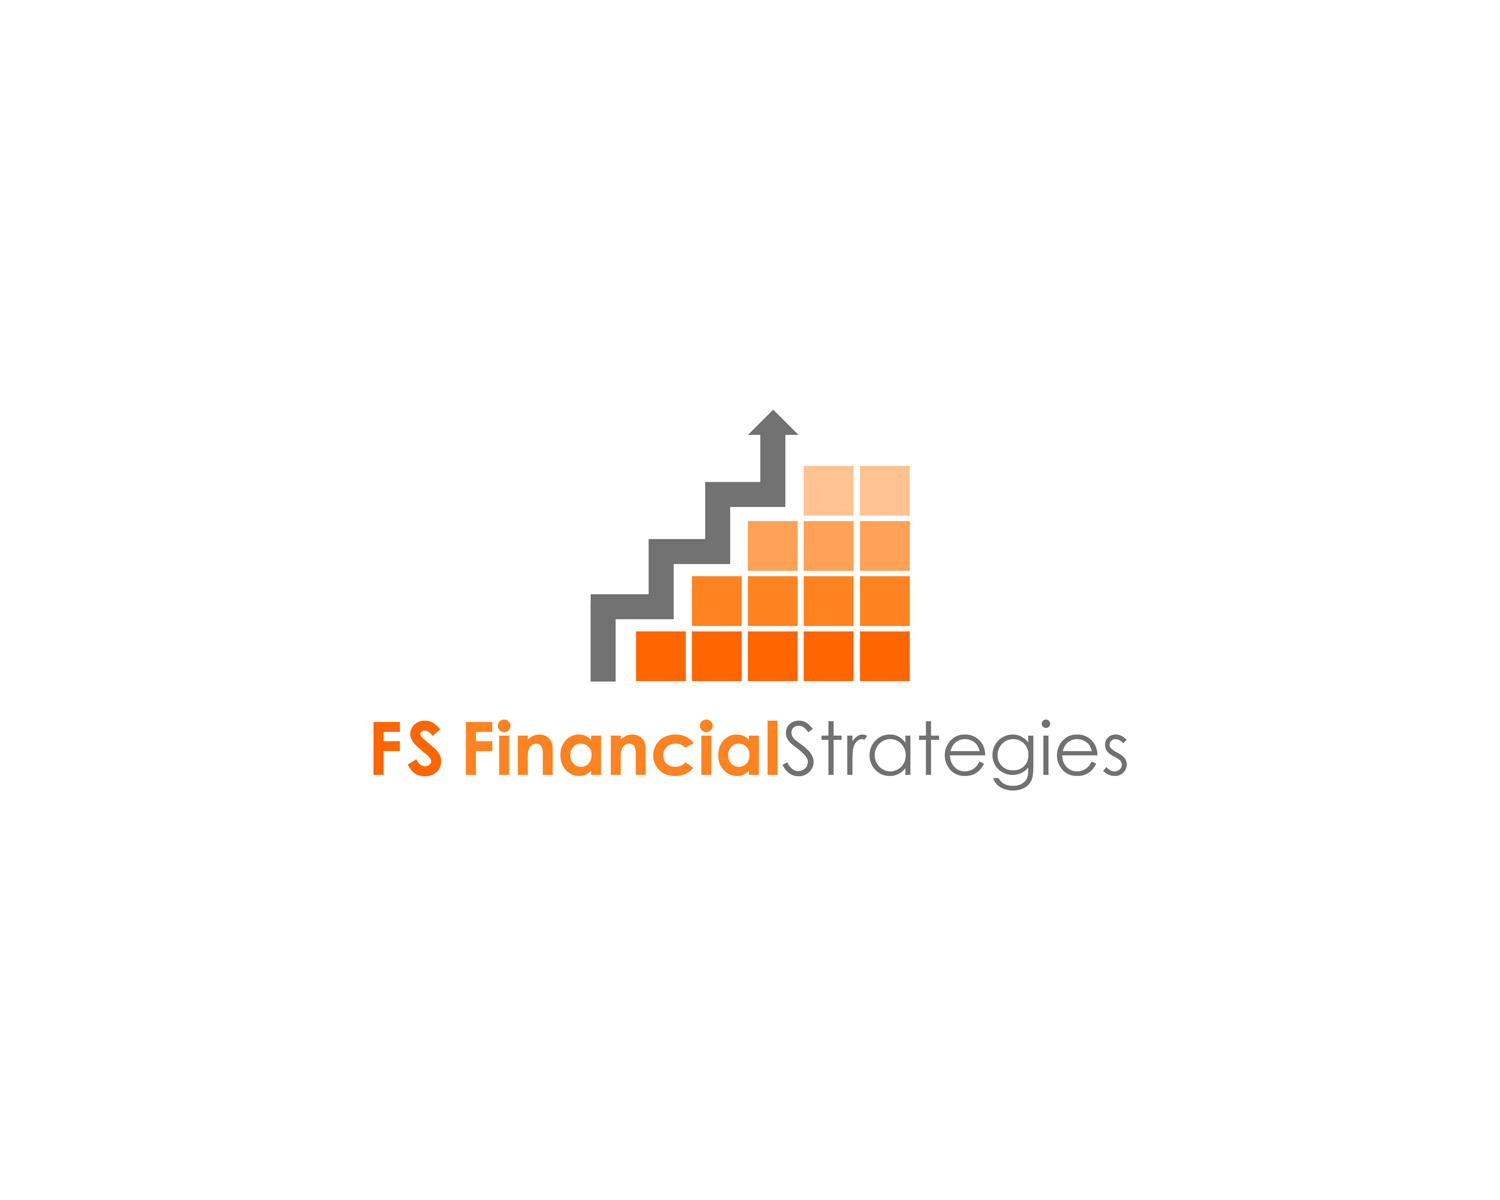 Logo Design by Qoaldjsk - Entry No. 138 in the Logo Design Contest Logo Design Needed for Exciting New Company FS Financial Strategies.